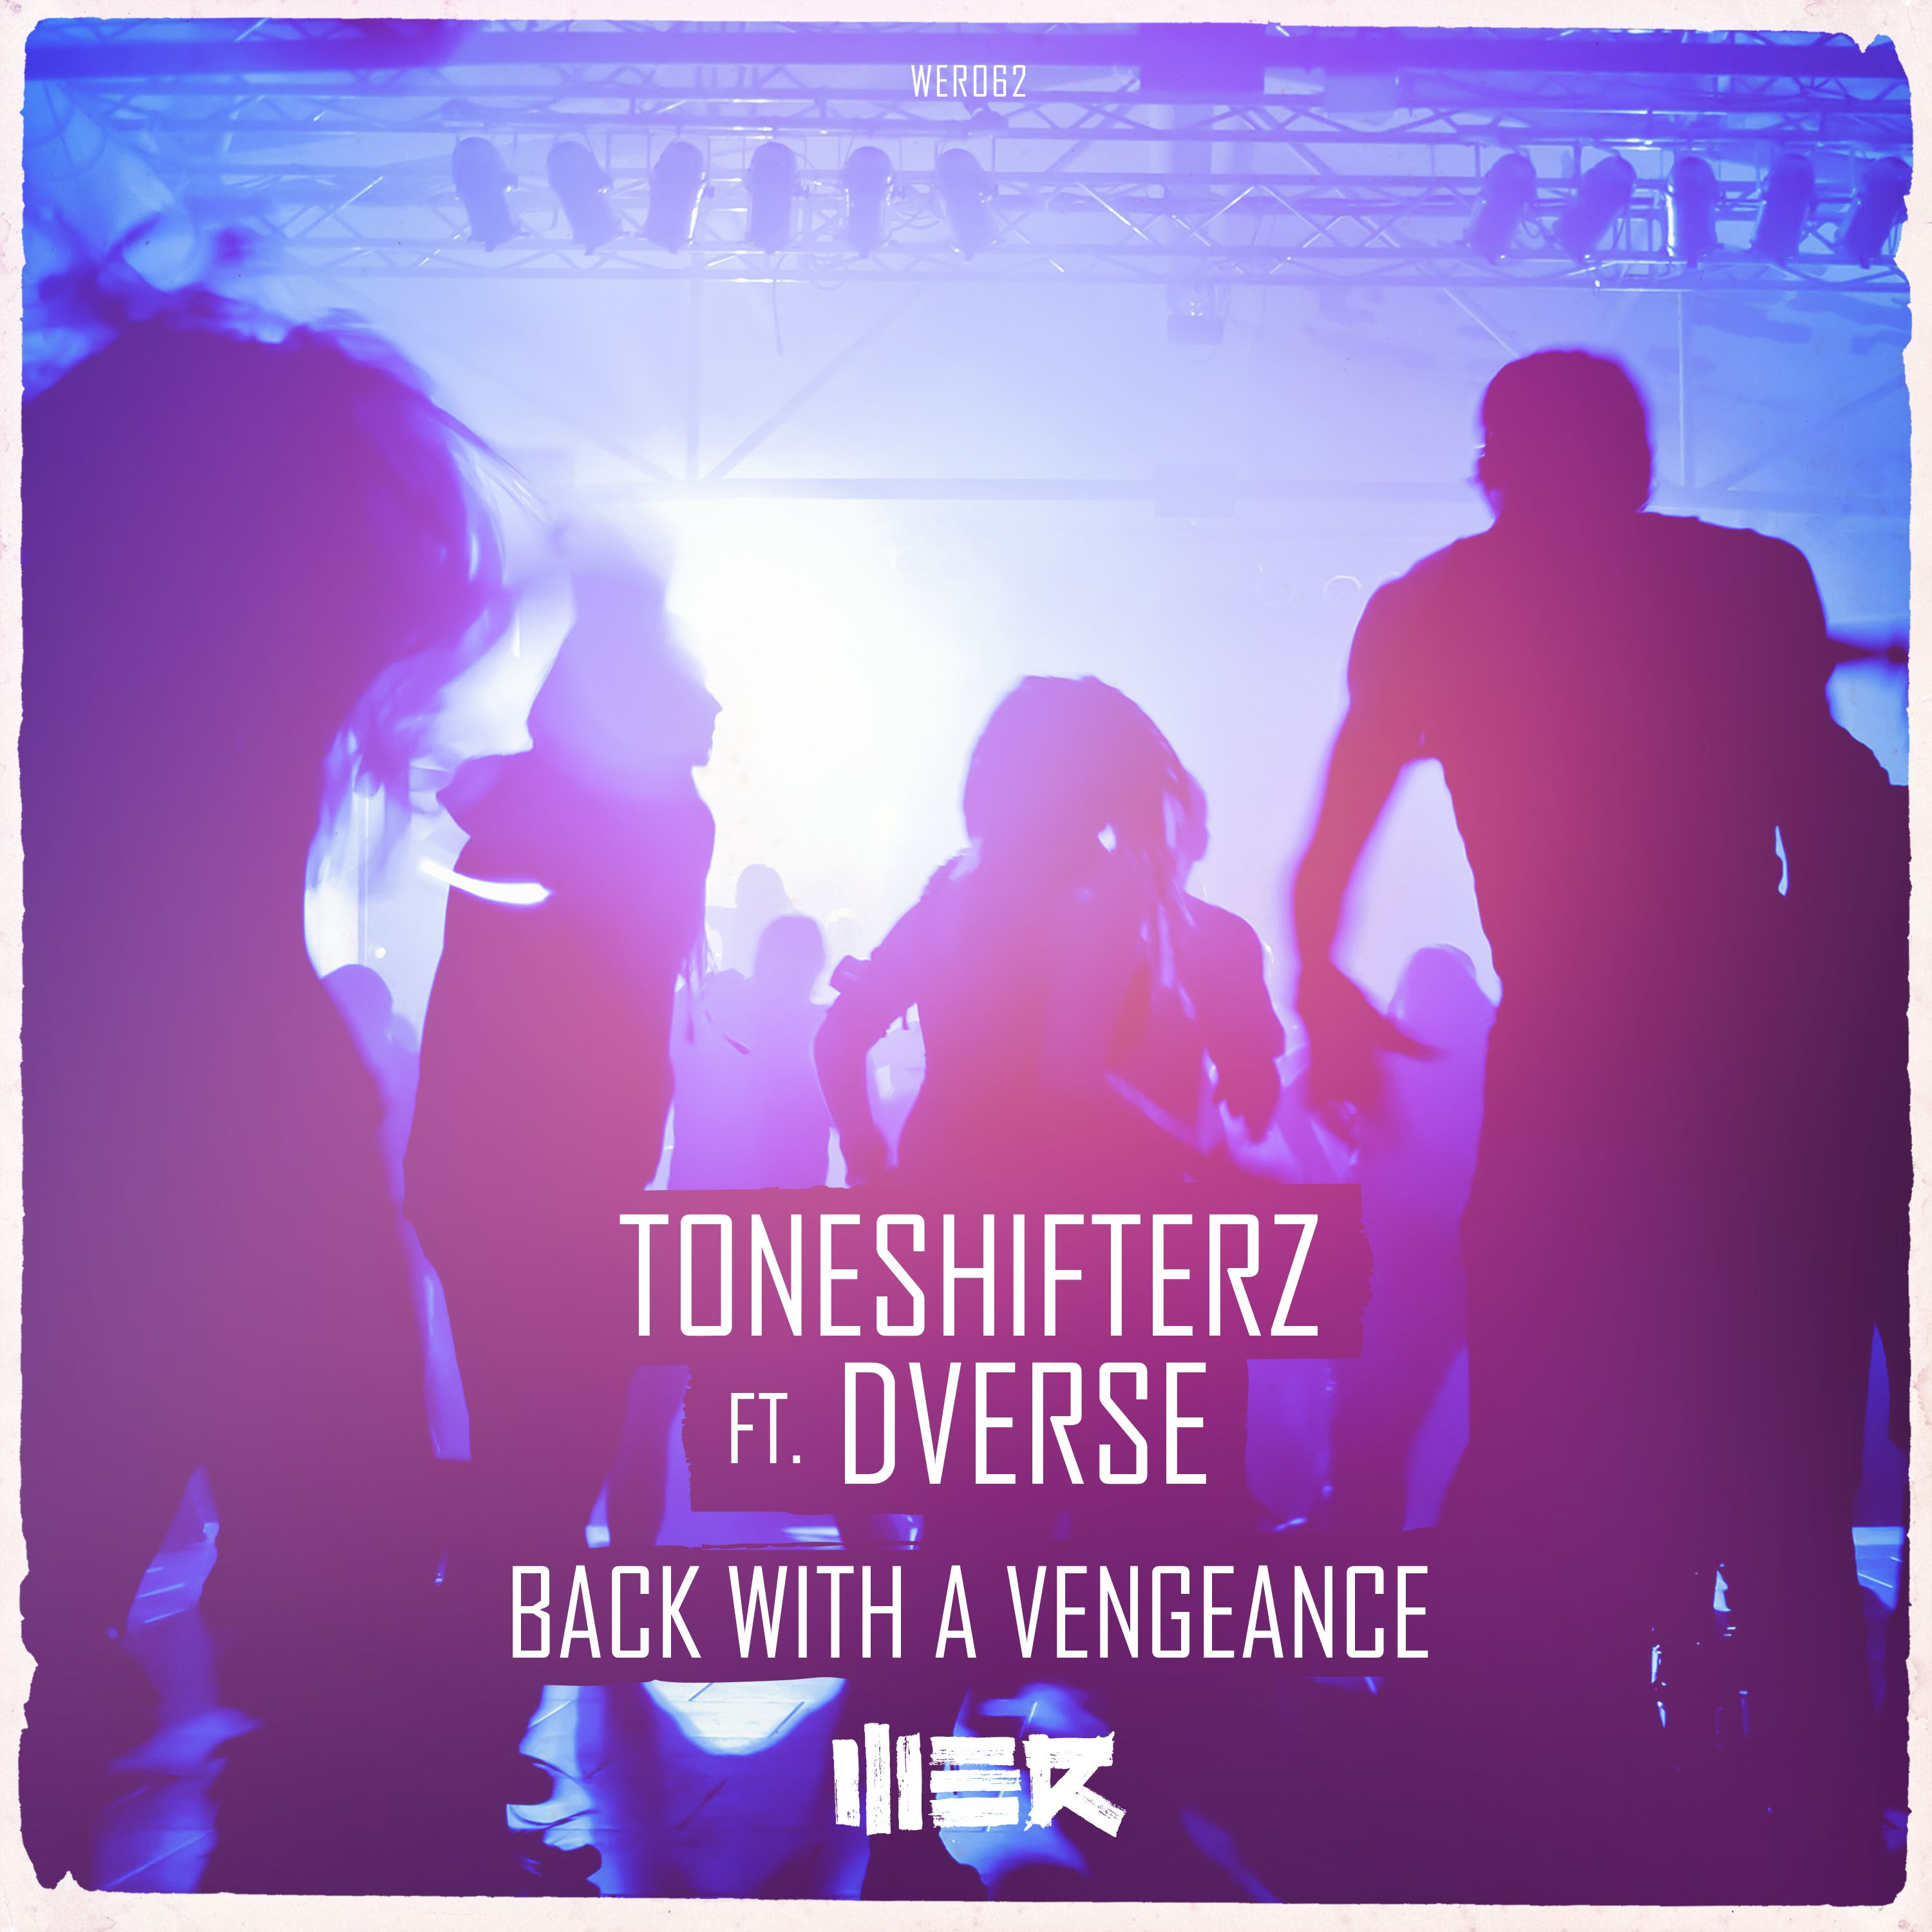 Toneshifterz Feat. DVERSE - Back With A Vengeance [WE R] WER062